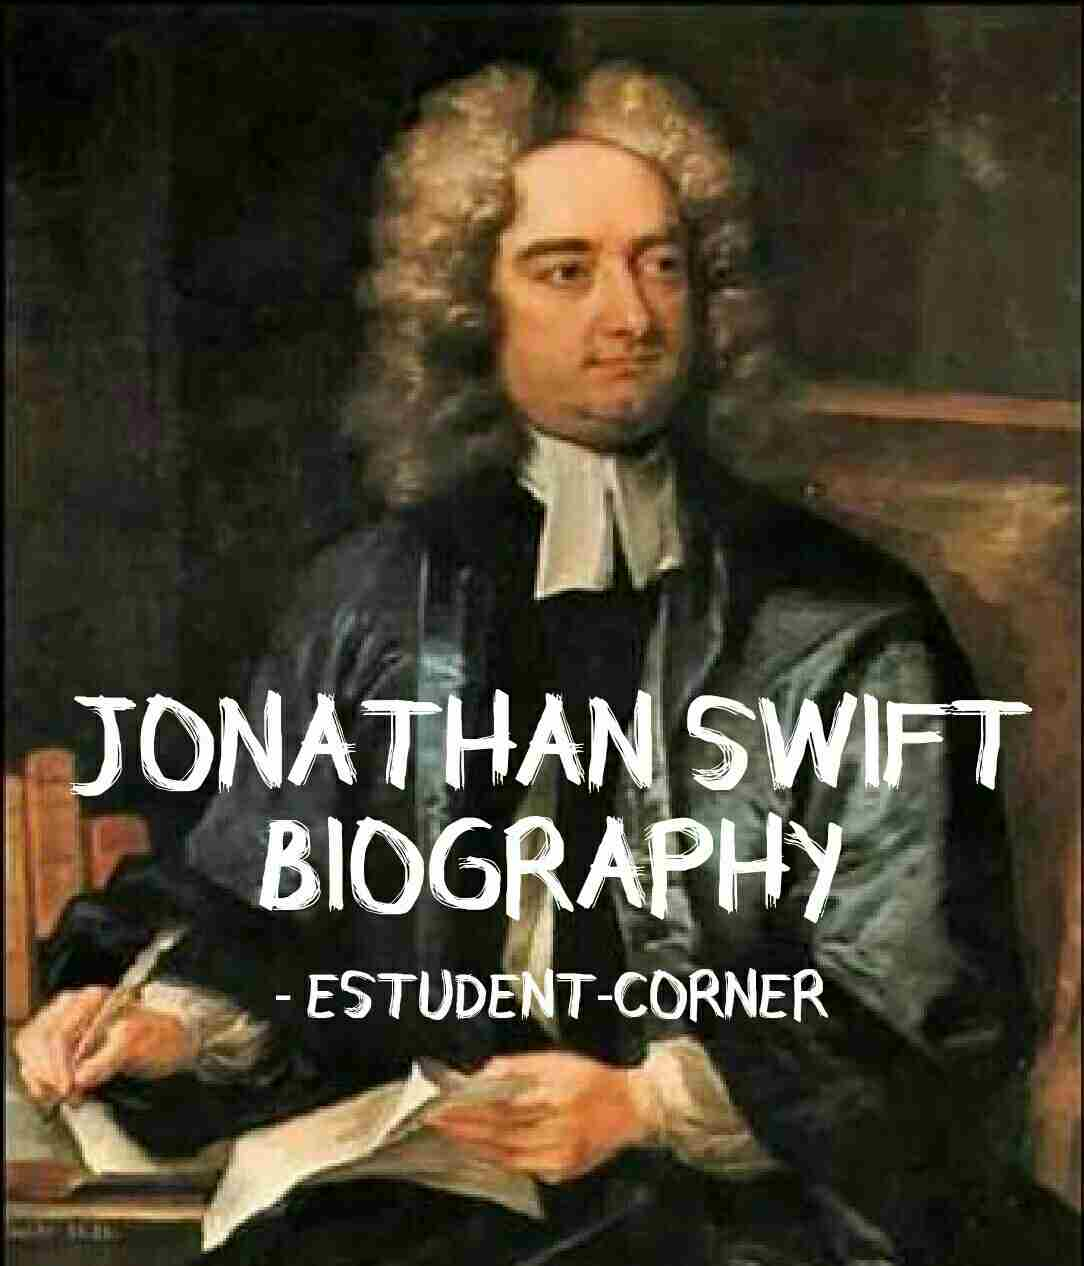 Jonathan Swift Wiki Biography Age Famous Works Satire Style Books